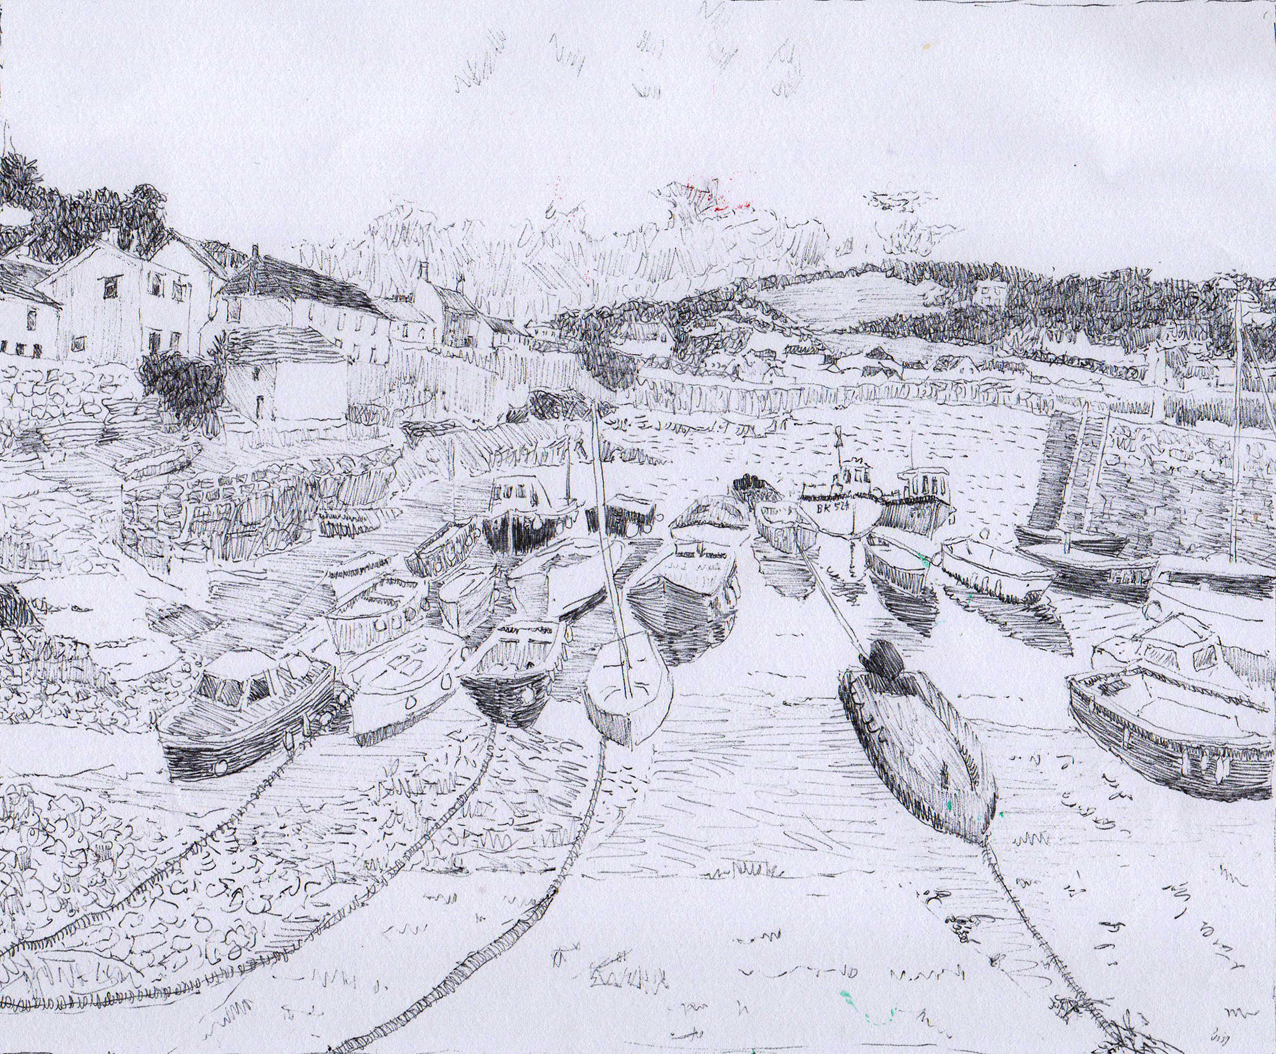 Coverack, biro on paper, 2016